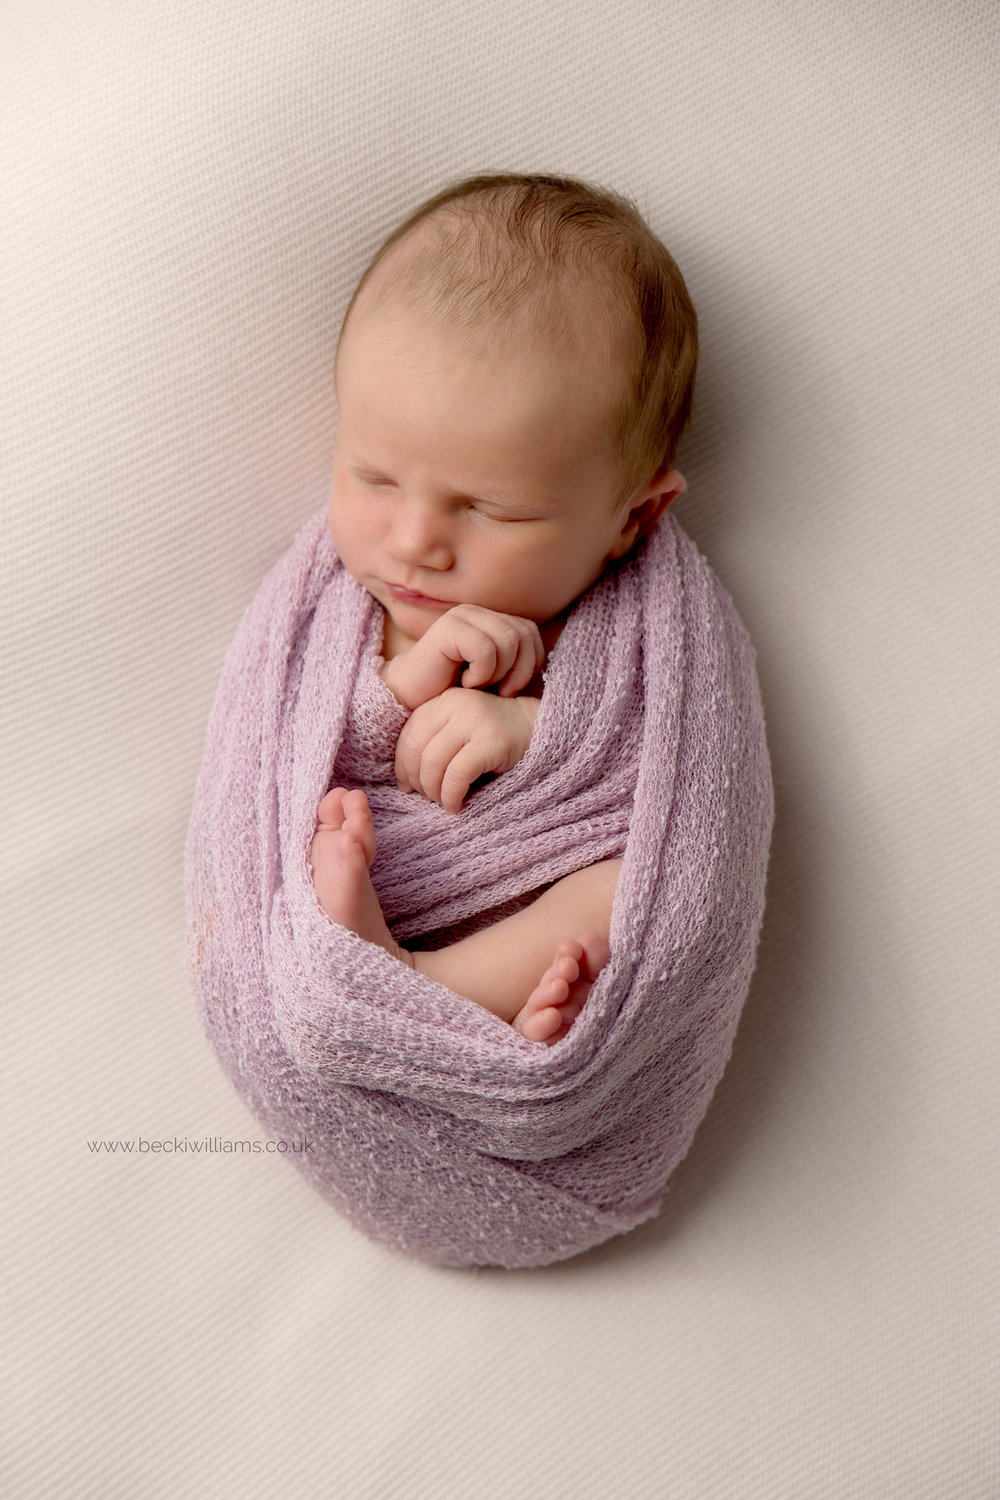 newborn baby girl wrapped in a pink wrap for her newborn photo shoot in Hemel hempstead